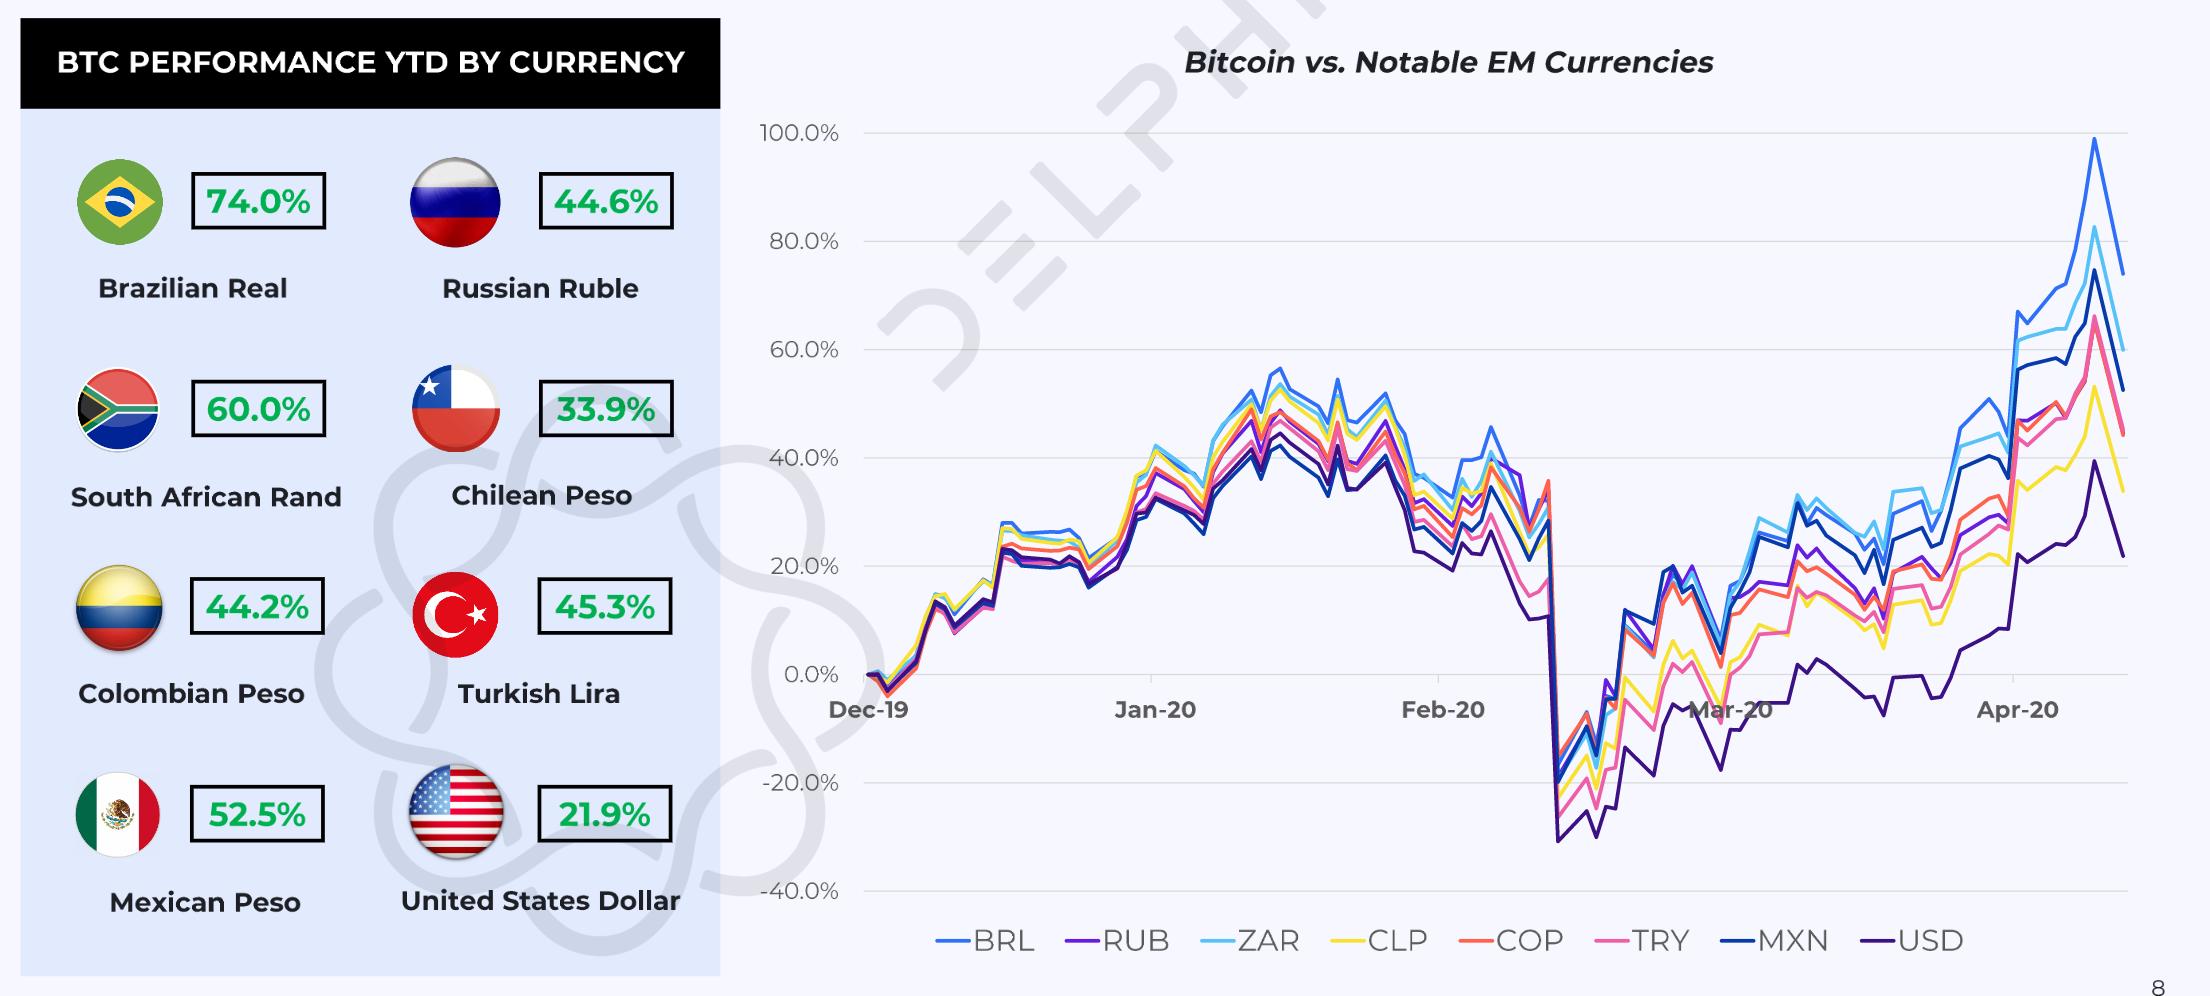 Bitcoin vs. Notable EM Currencies. (Source: Delphi Digital)